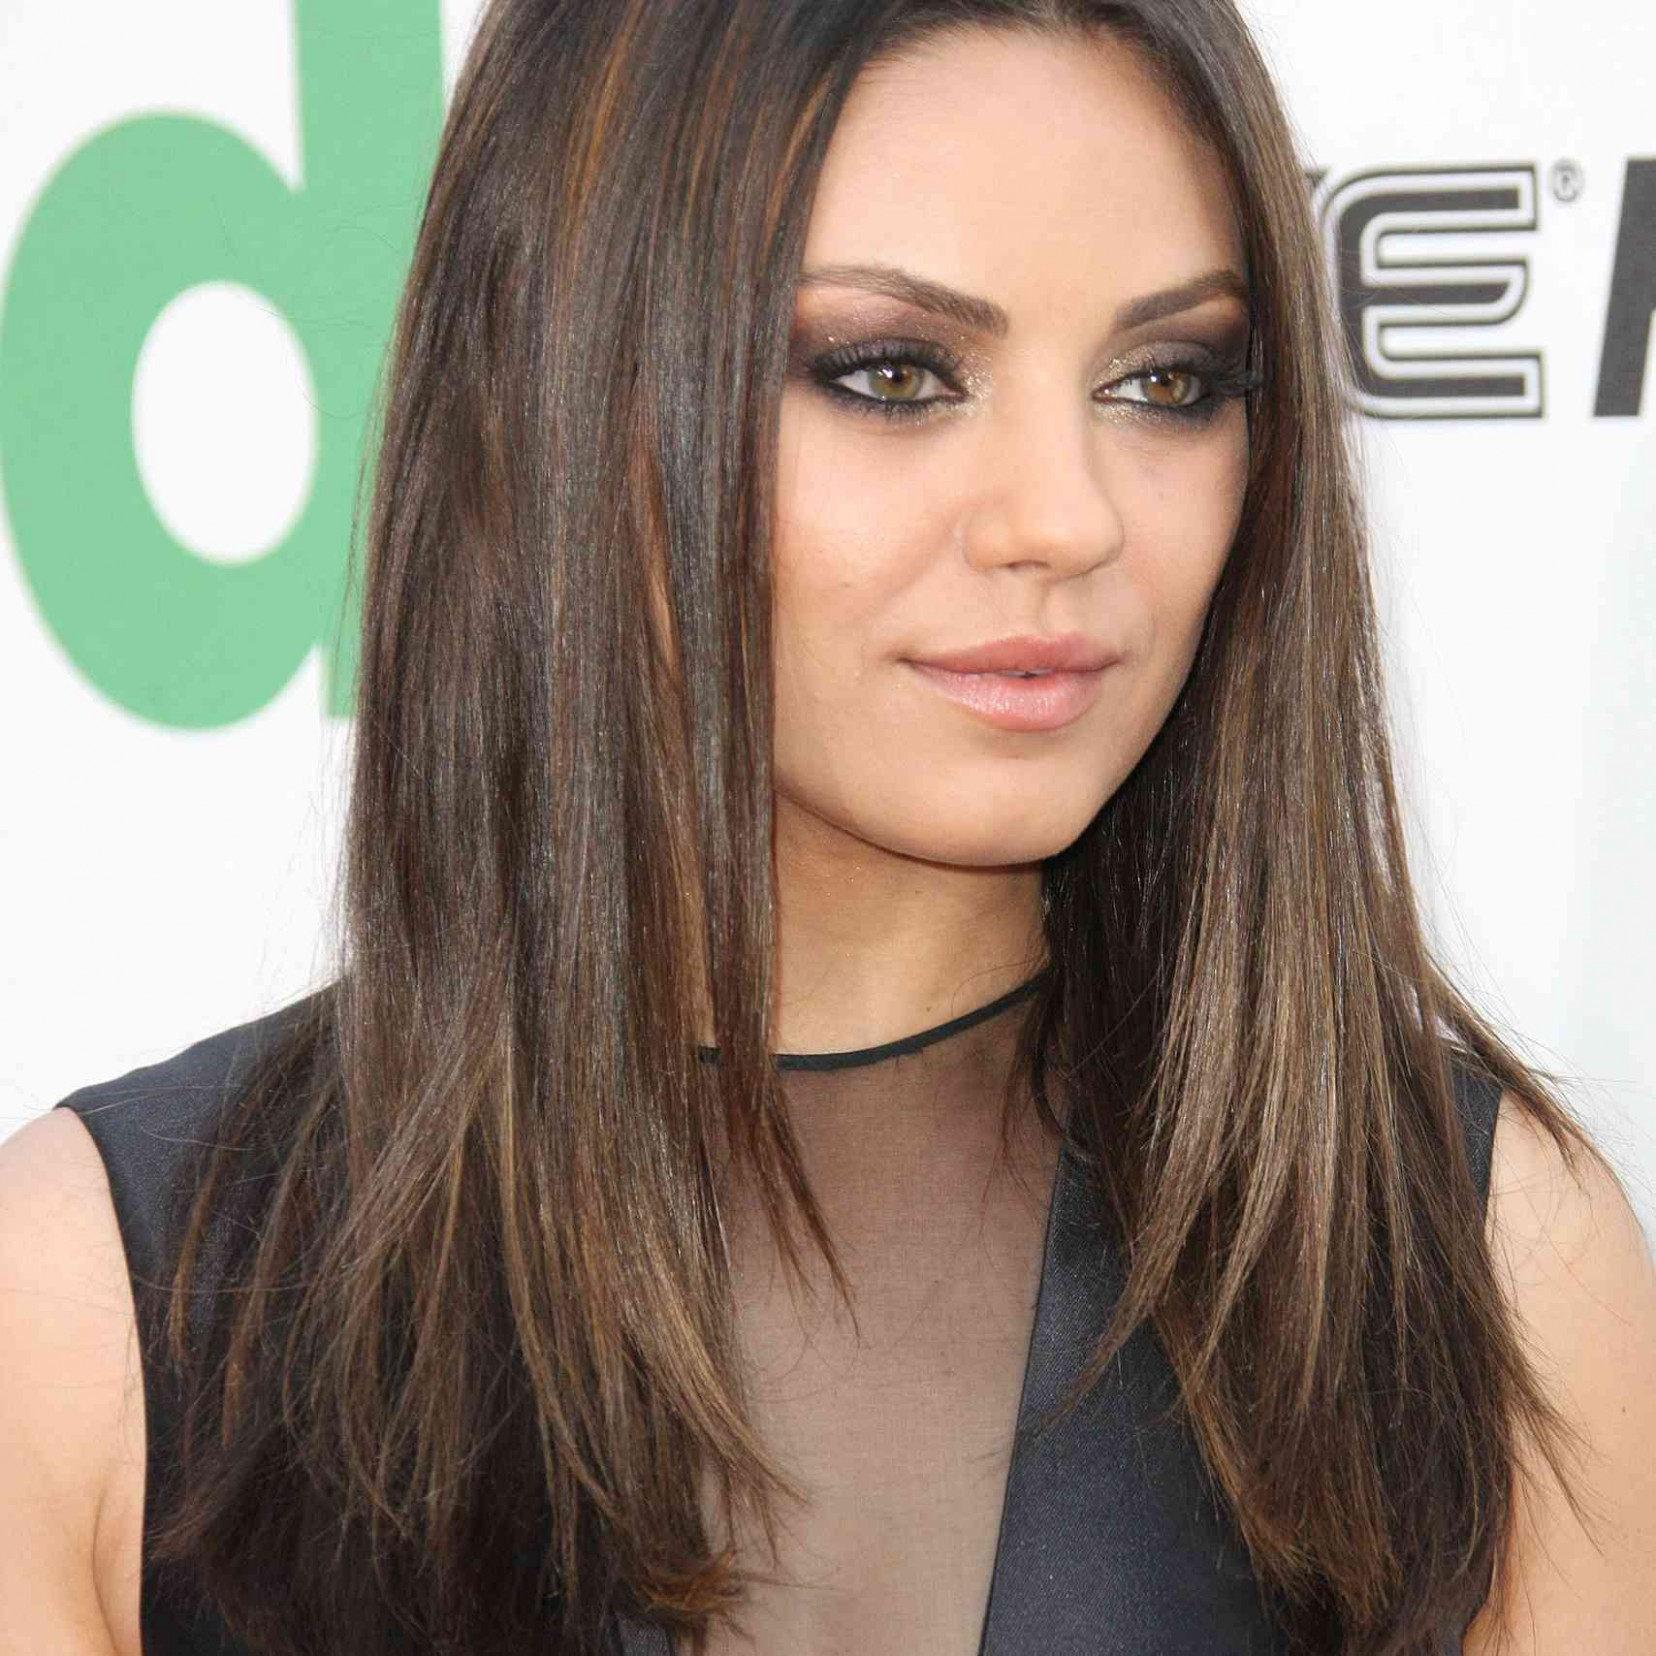 12 Of The Best Hairstyles For Round Faces Hairstyle For Chubby Face